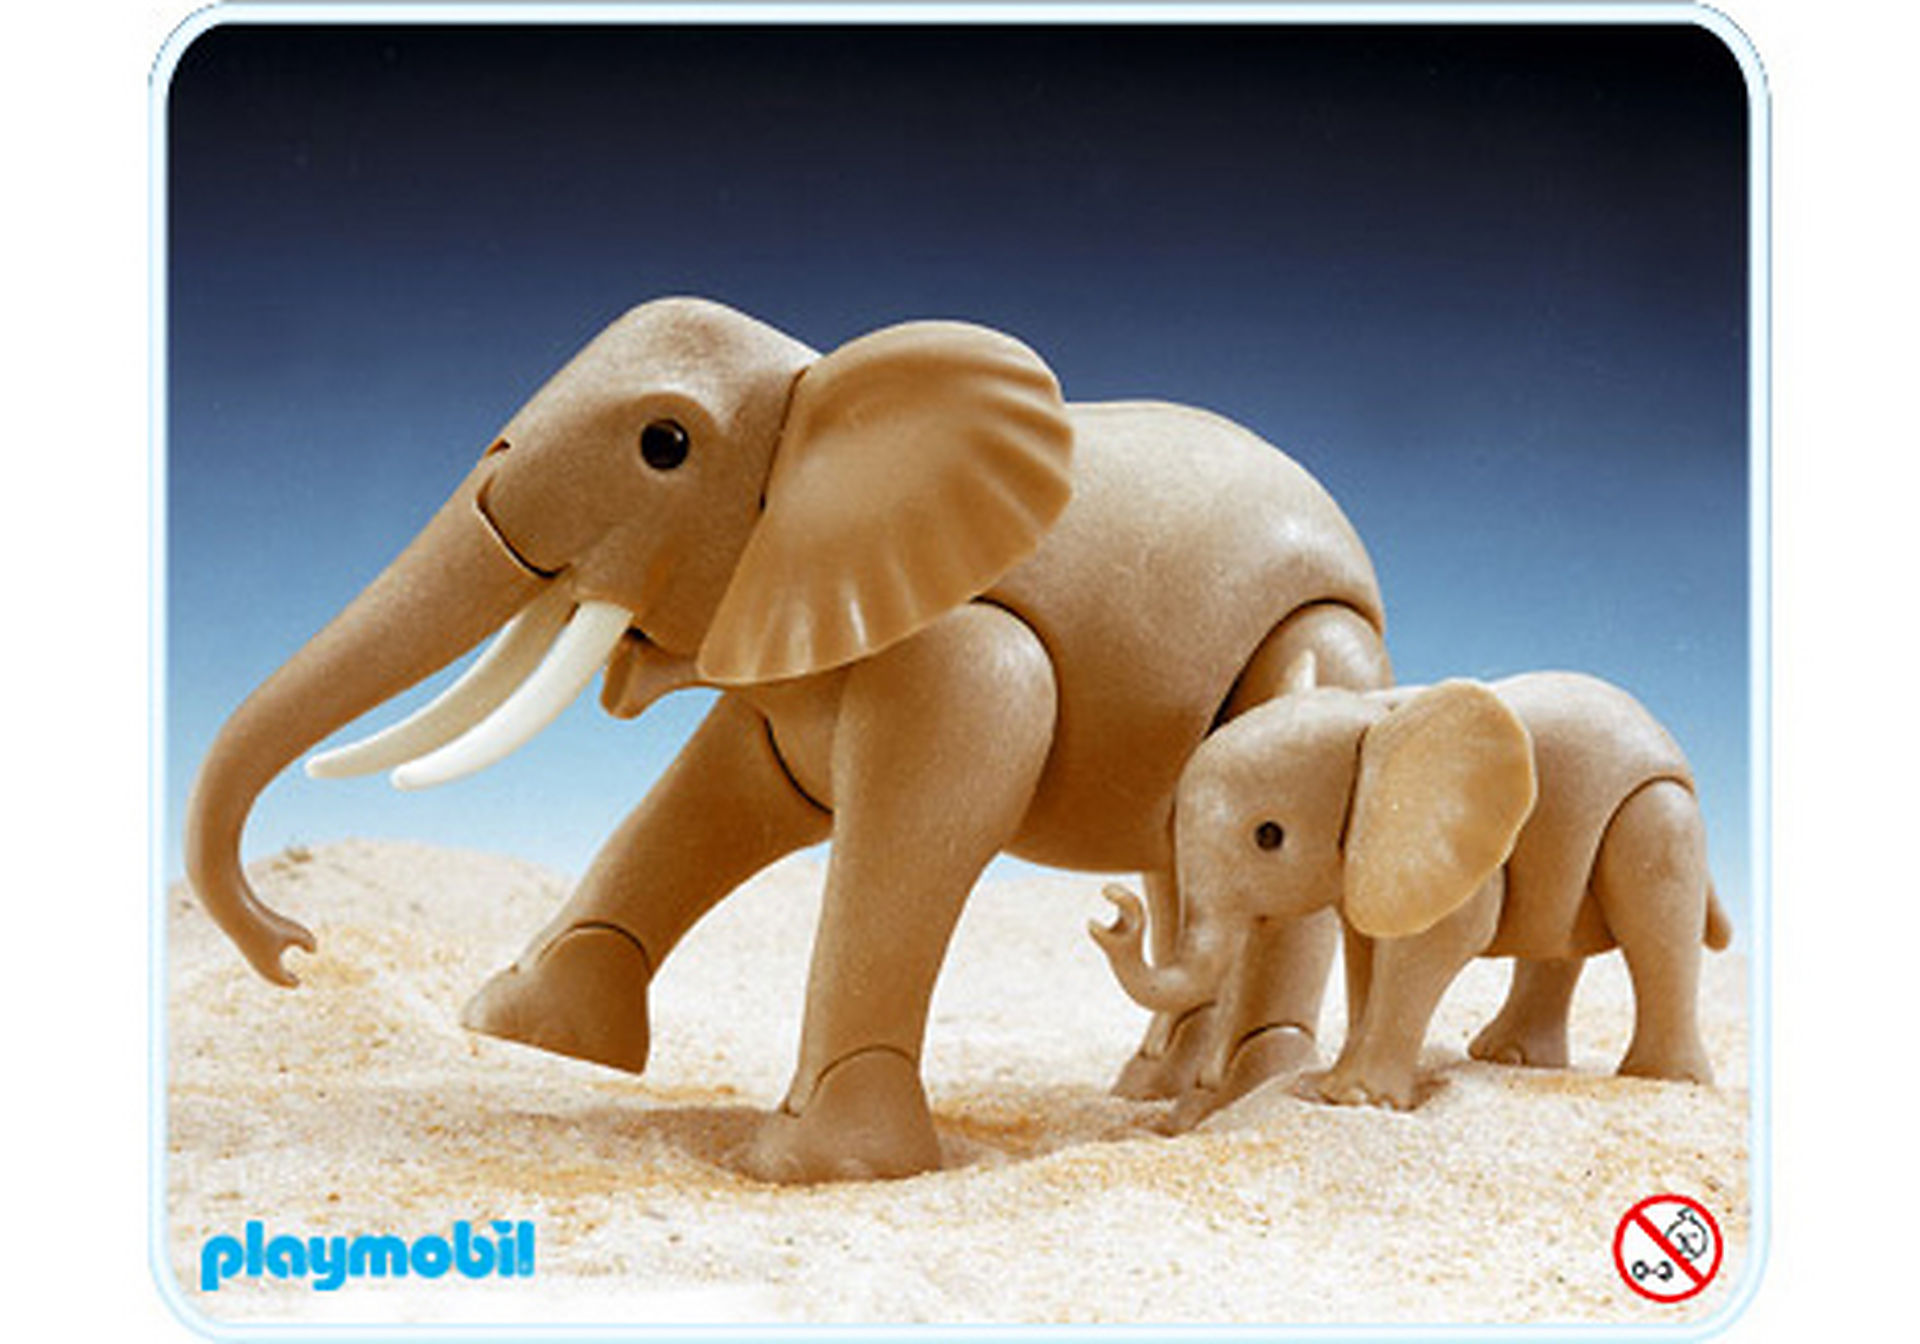 http://media.playmobil.com/i/playmobil/3493-A_product_detail/Elefant/Baby